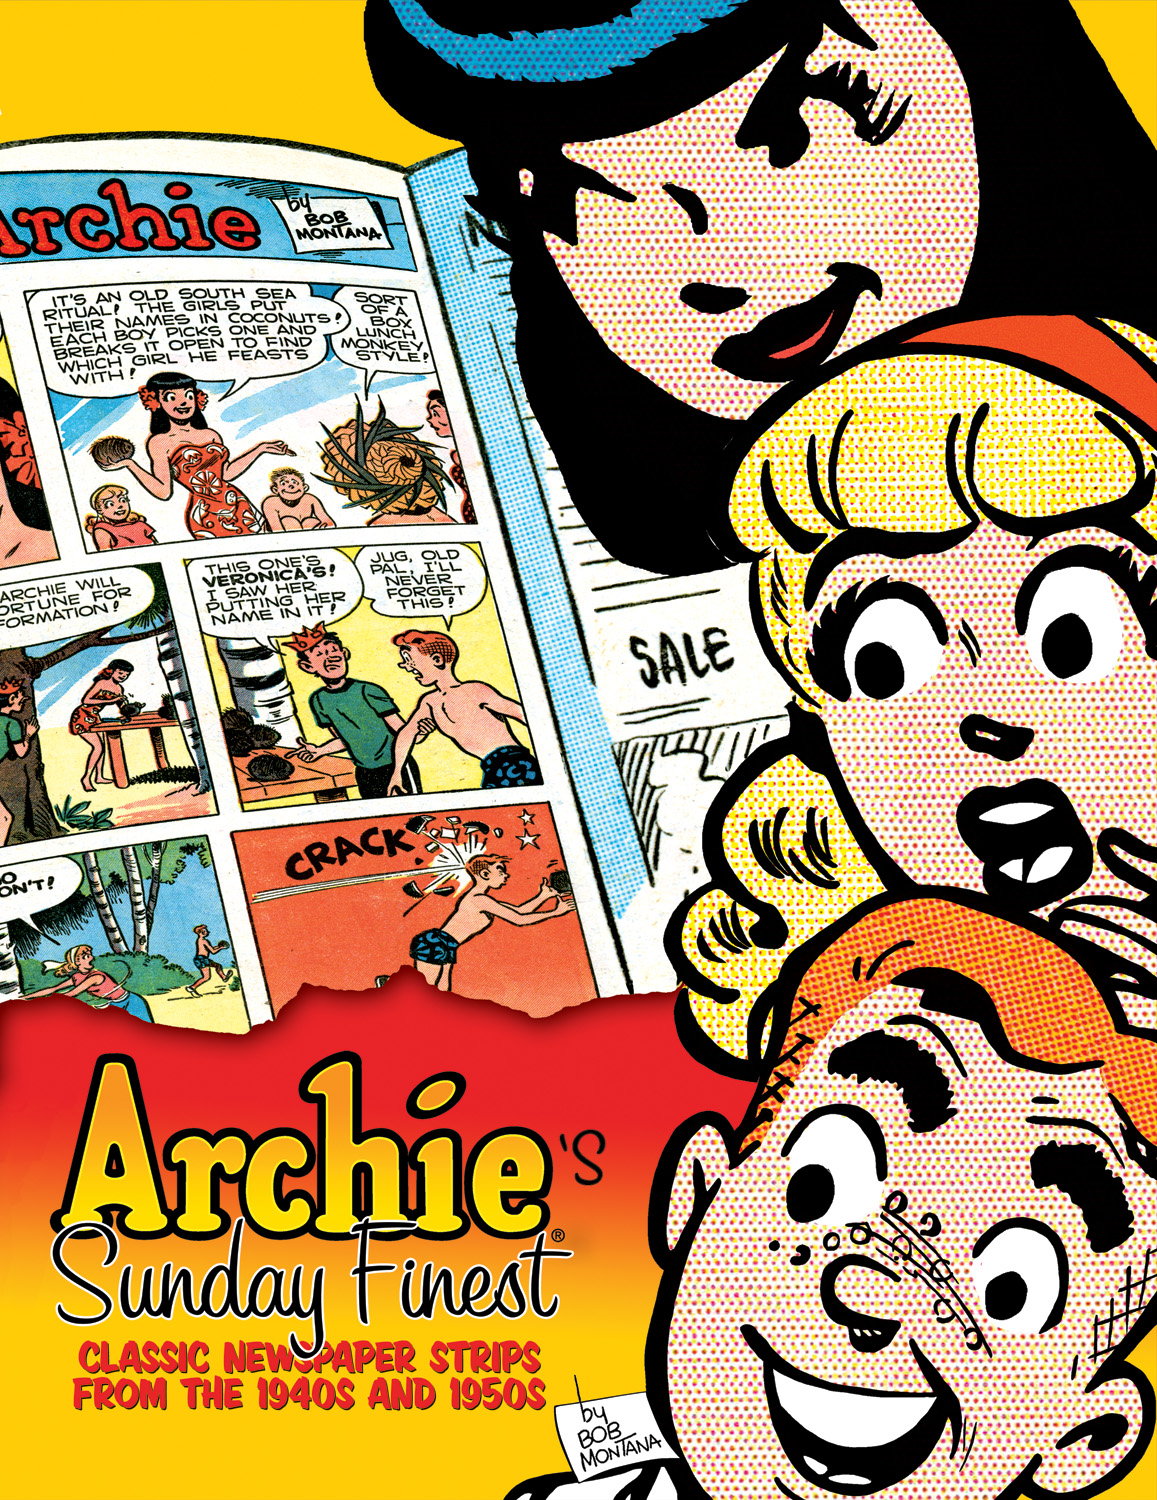 [Archie's Sunday Finest Cover]